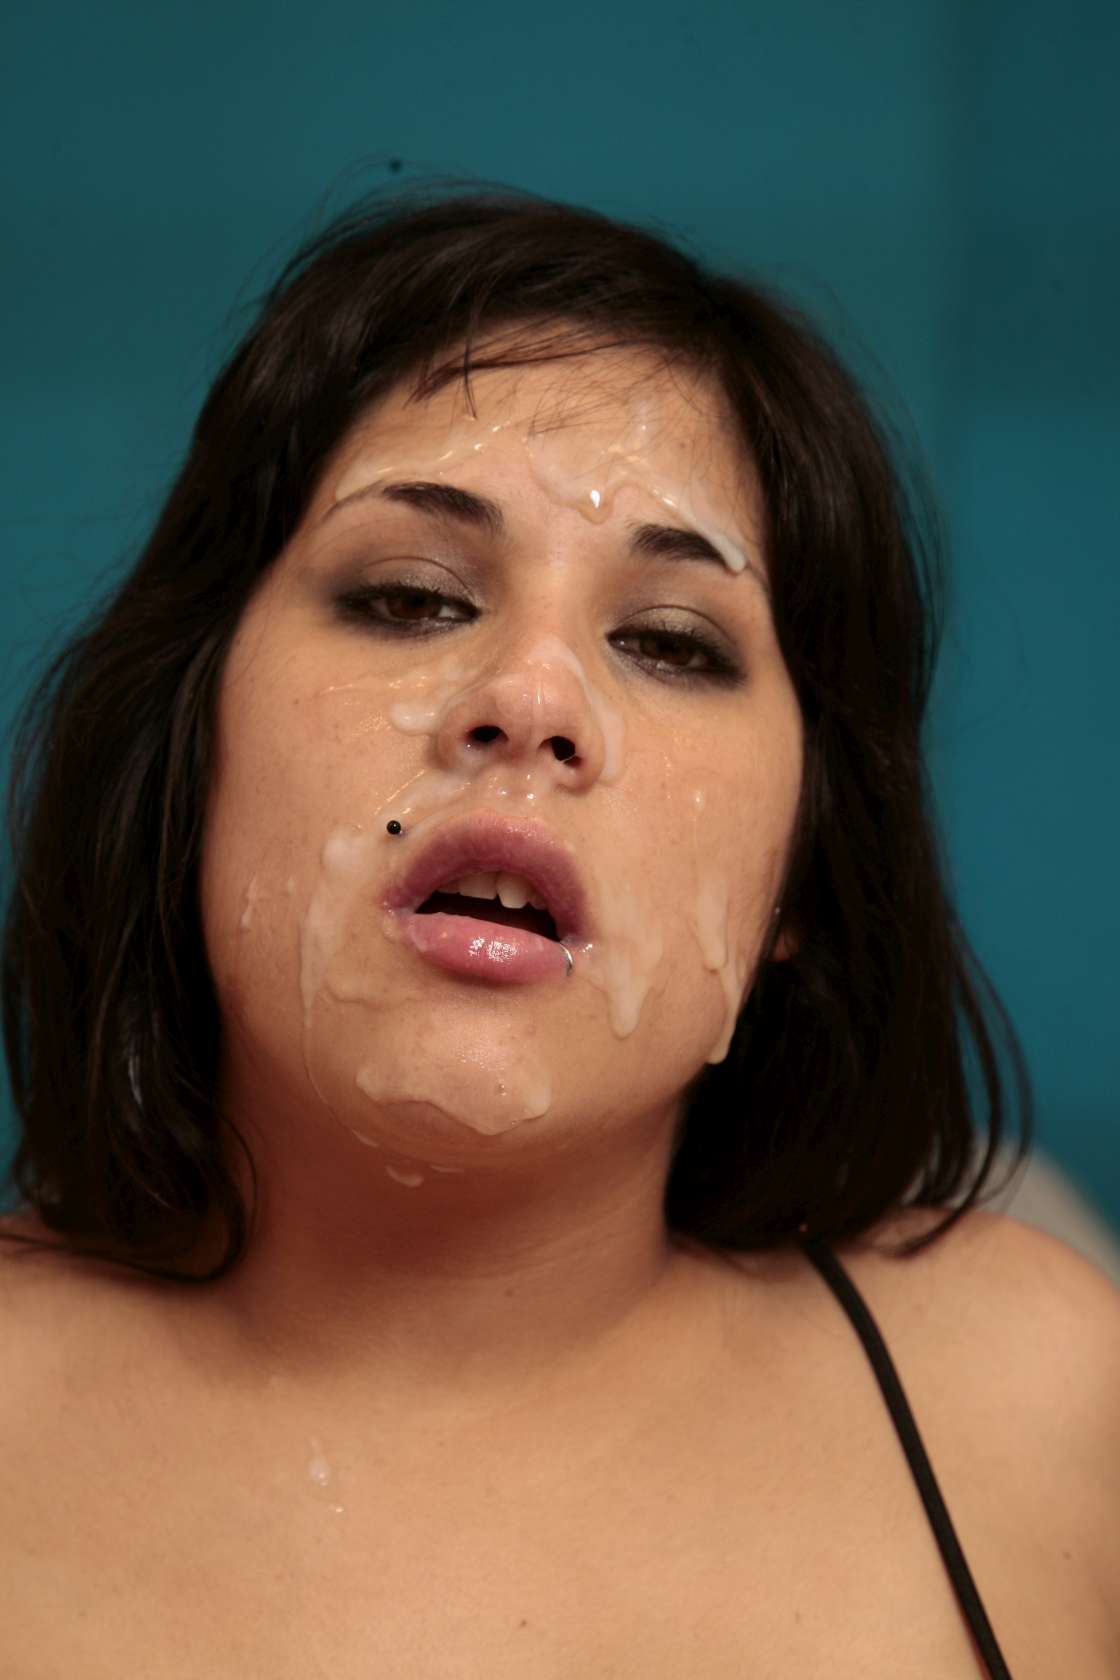 2 cocks complete for doll during frottage handjob - 2 9